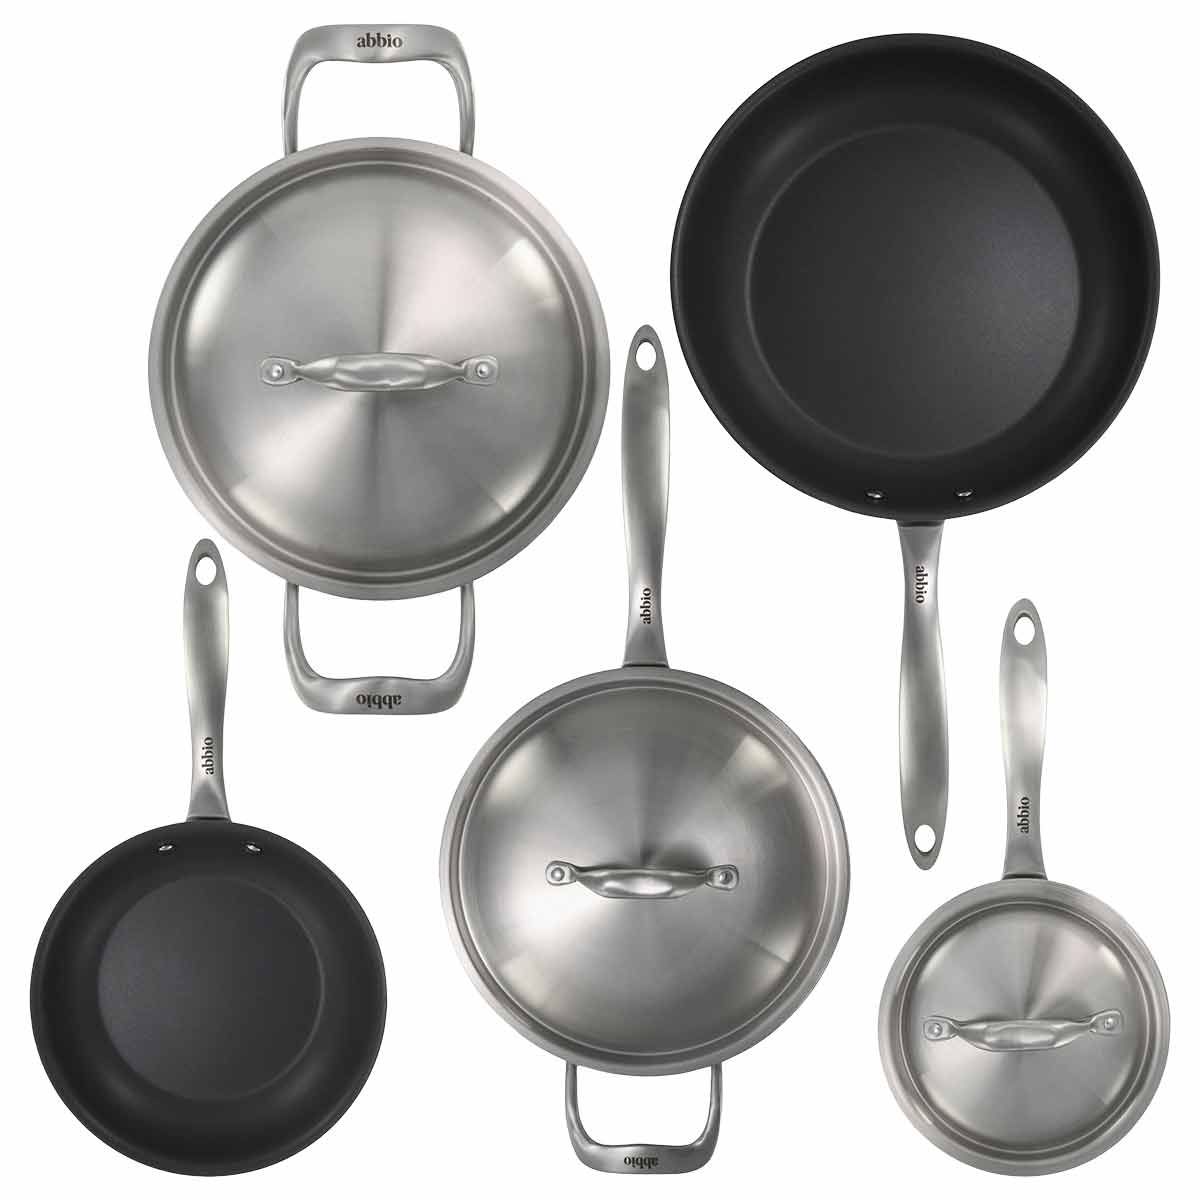 8-Piece Abbio Cookware Set